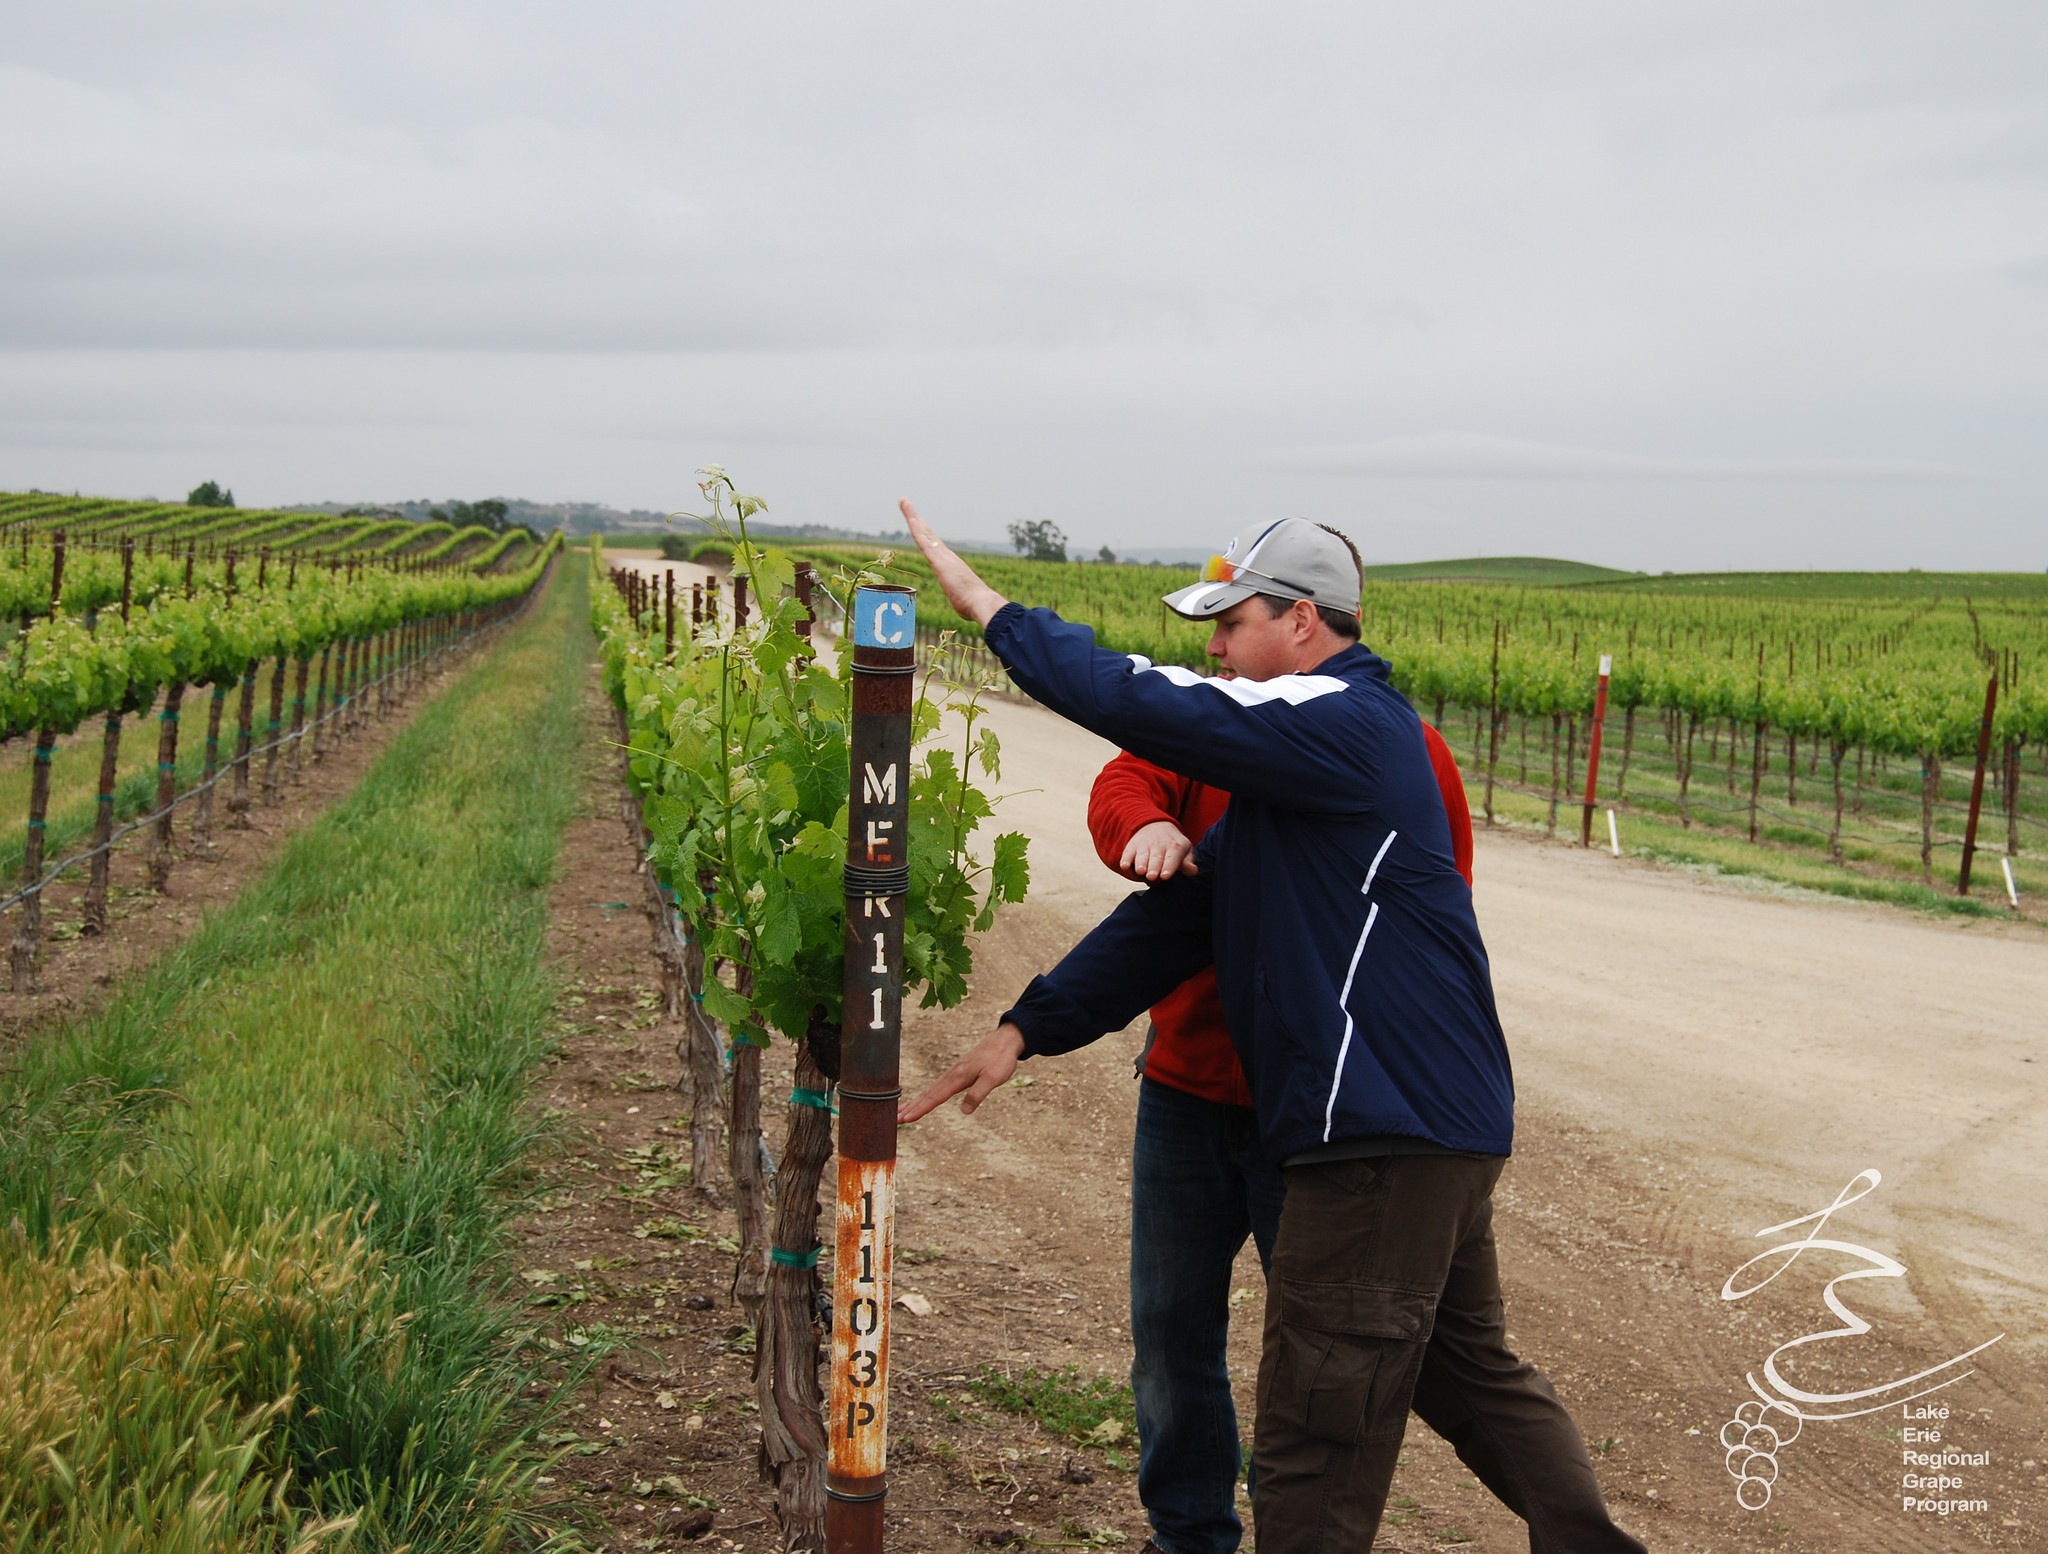 What is the efficient vineyard project? - Visit the Efficient Vineyard website by clicking here.